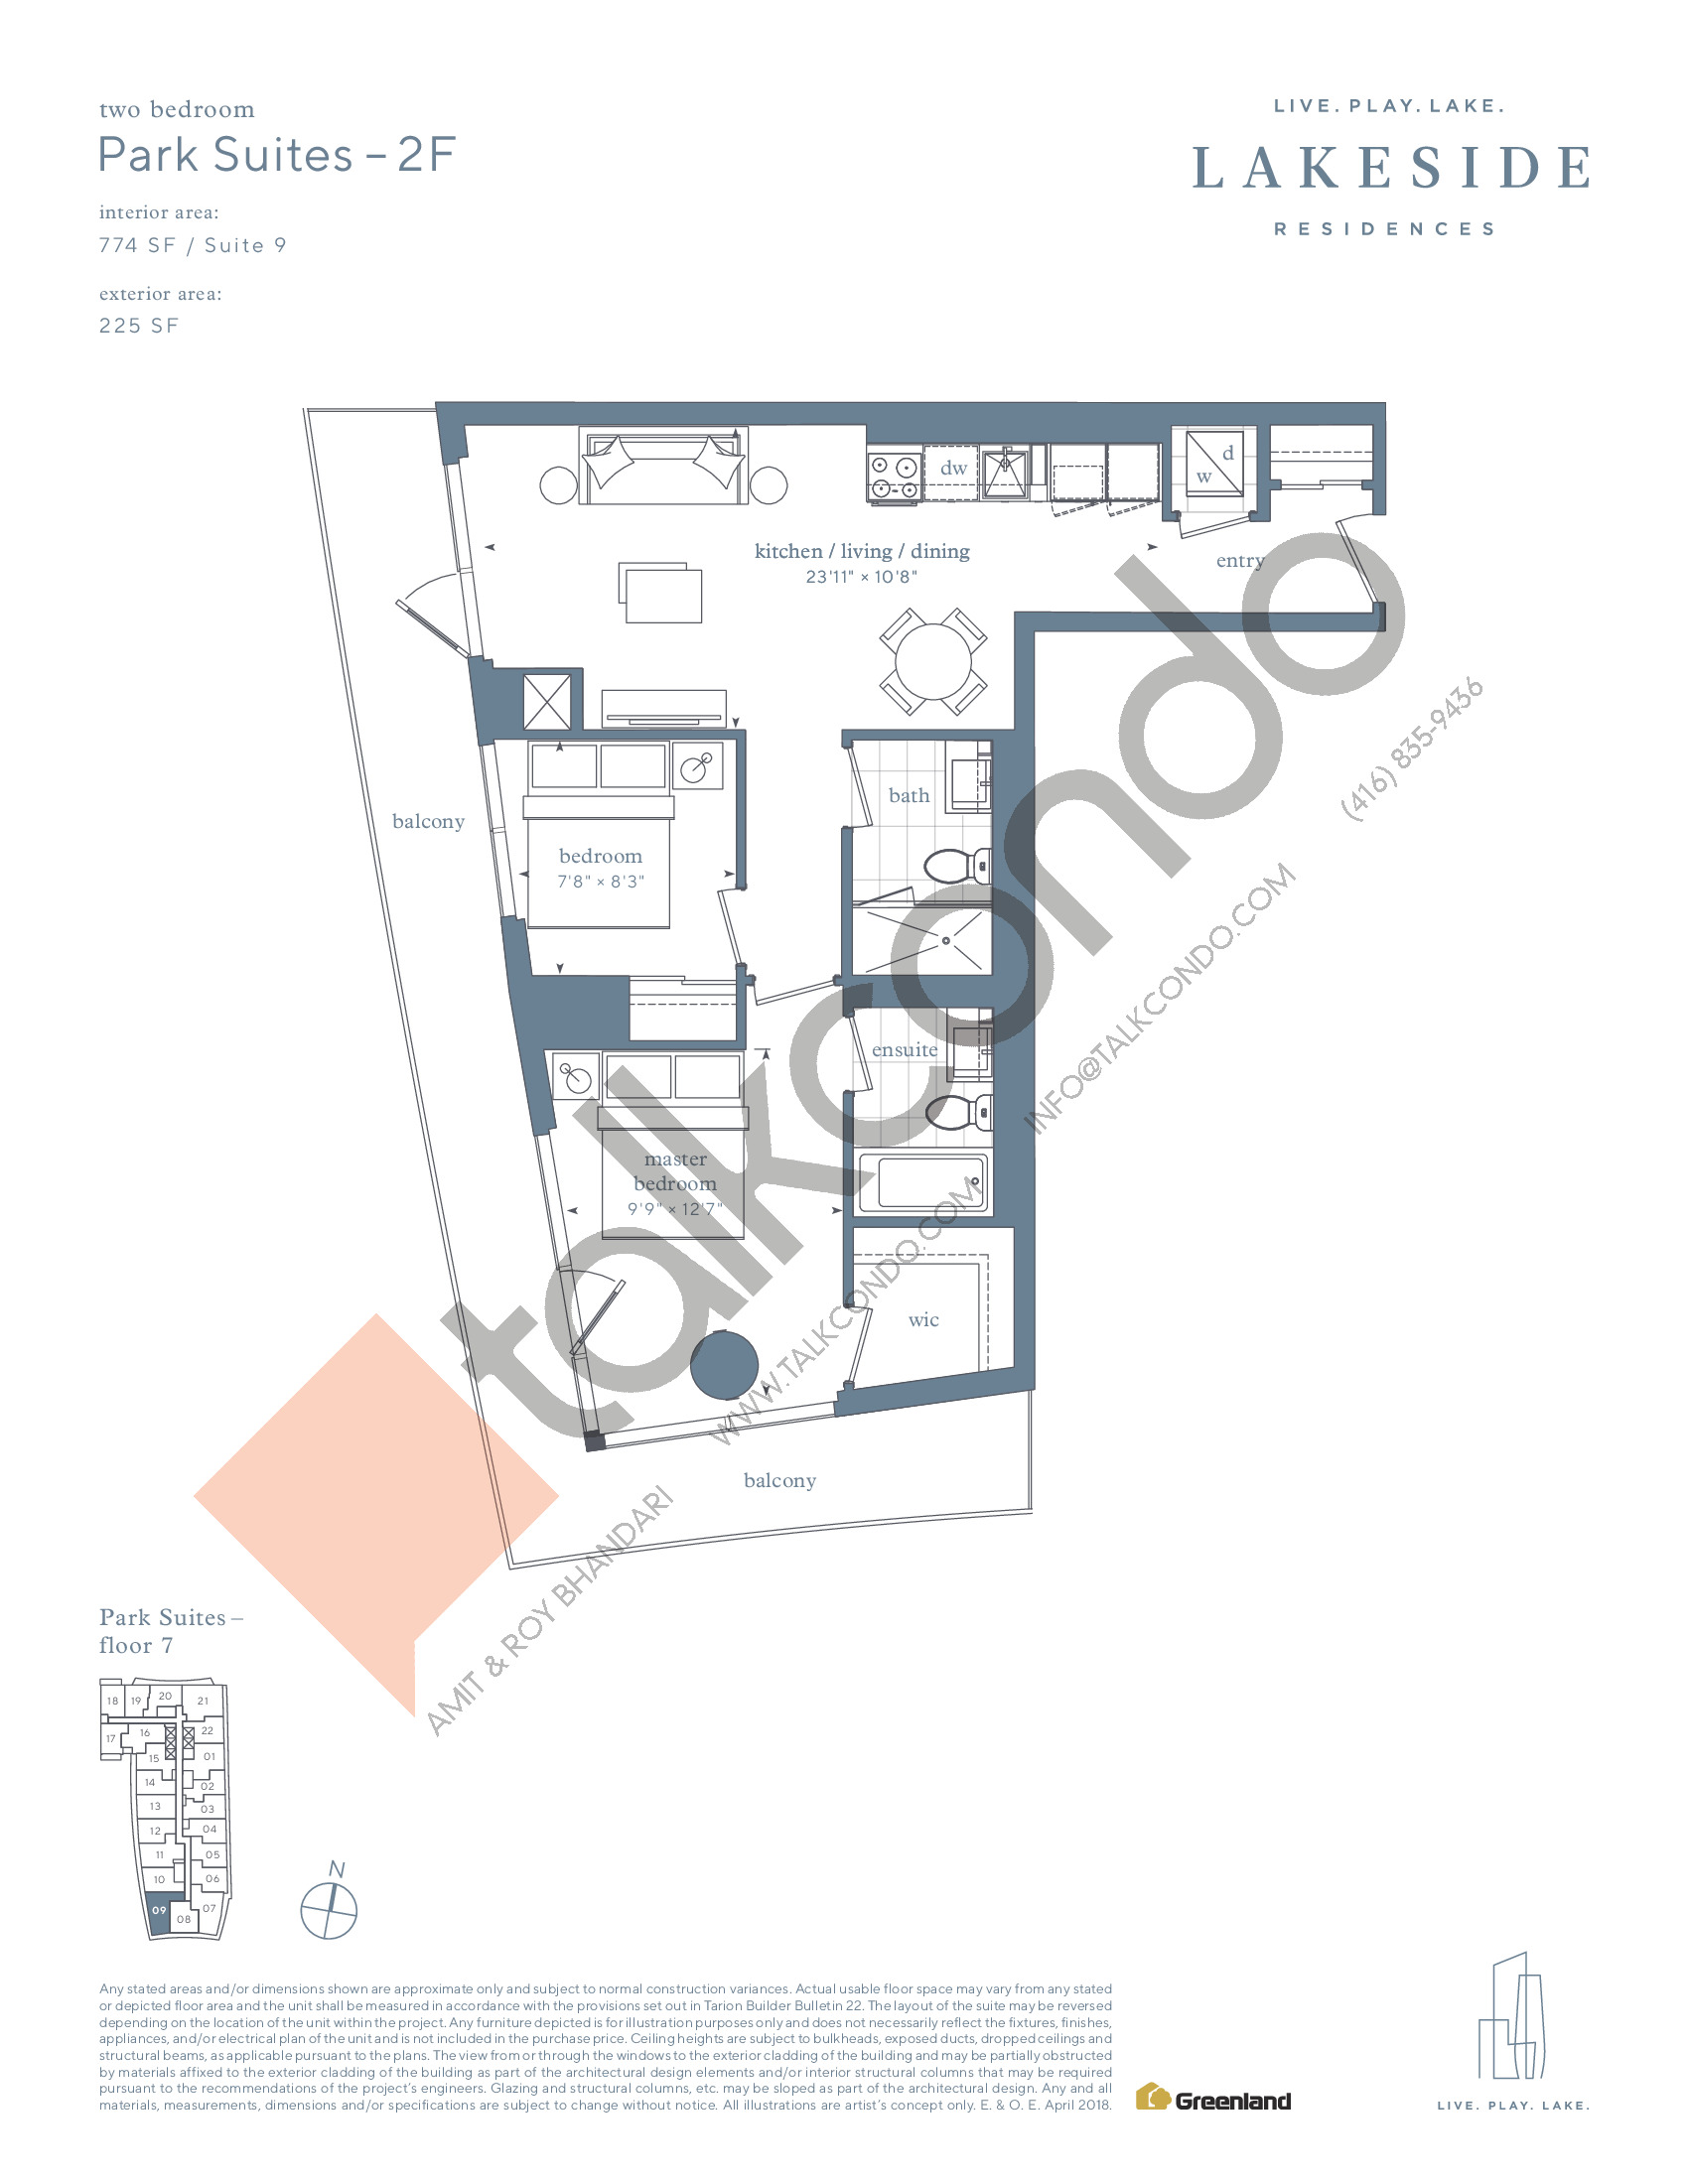 Park Suites - 2F Floor Plan at Lakeside Residences - 774 sq.ft